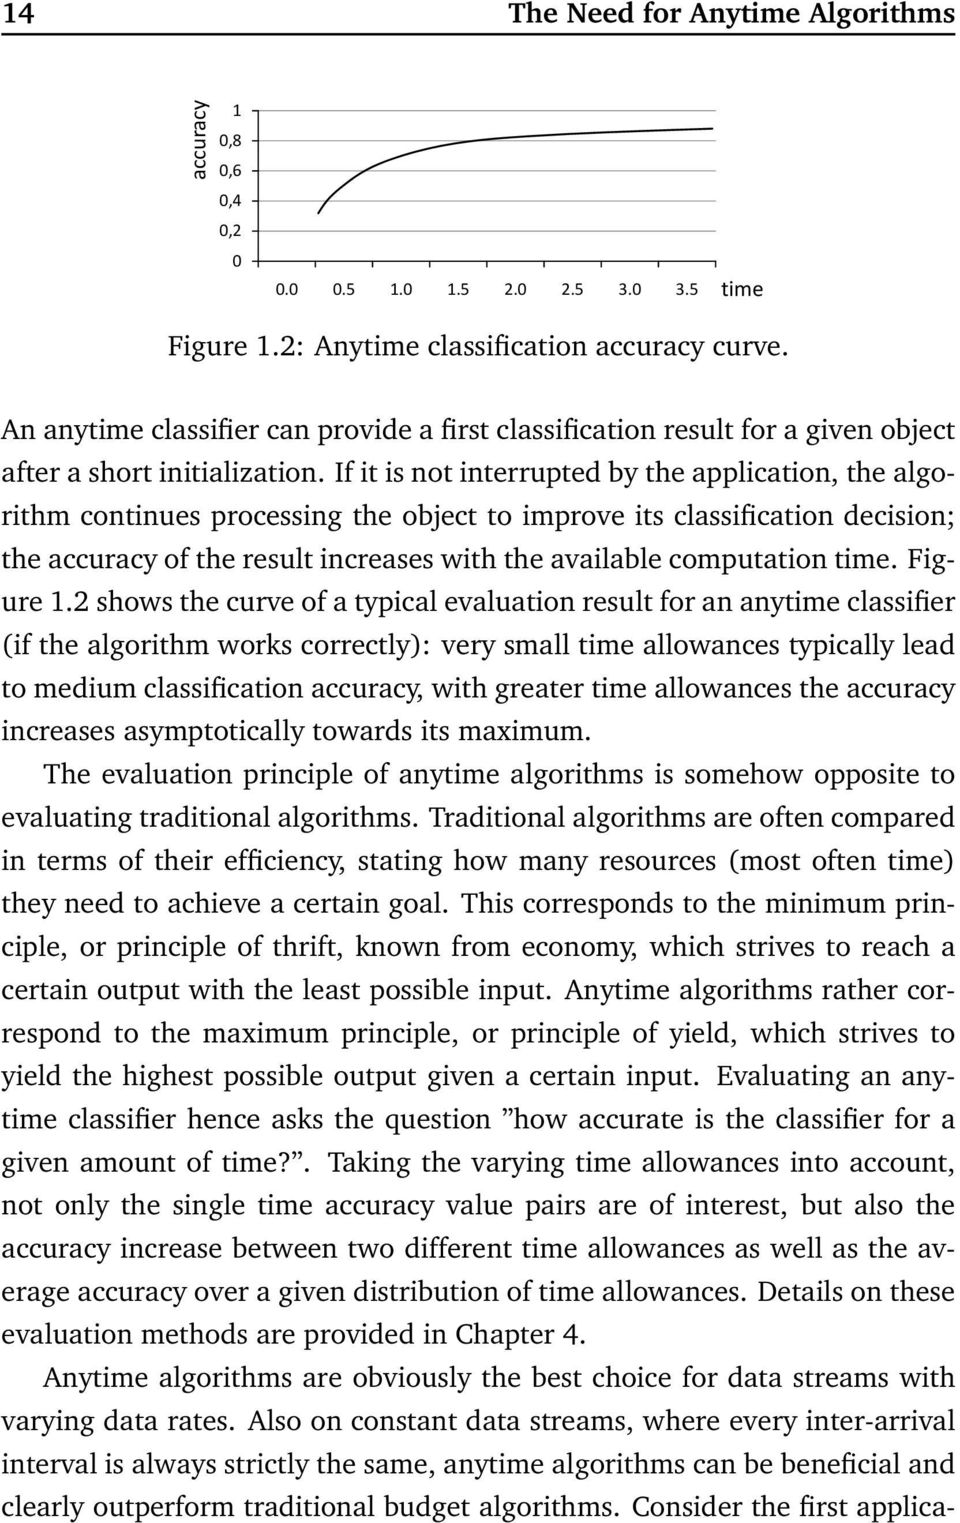 If it is not interrupted by the application, the algorithm continues processing the object to improve its classification decision; the accuracy of the result increases with the available computation